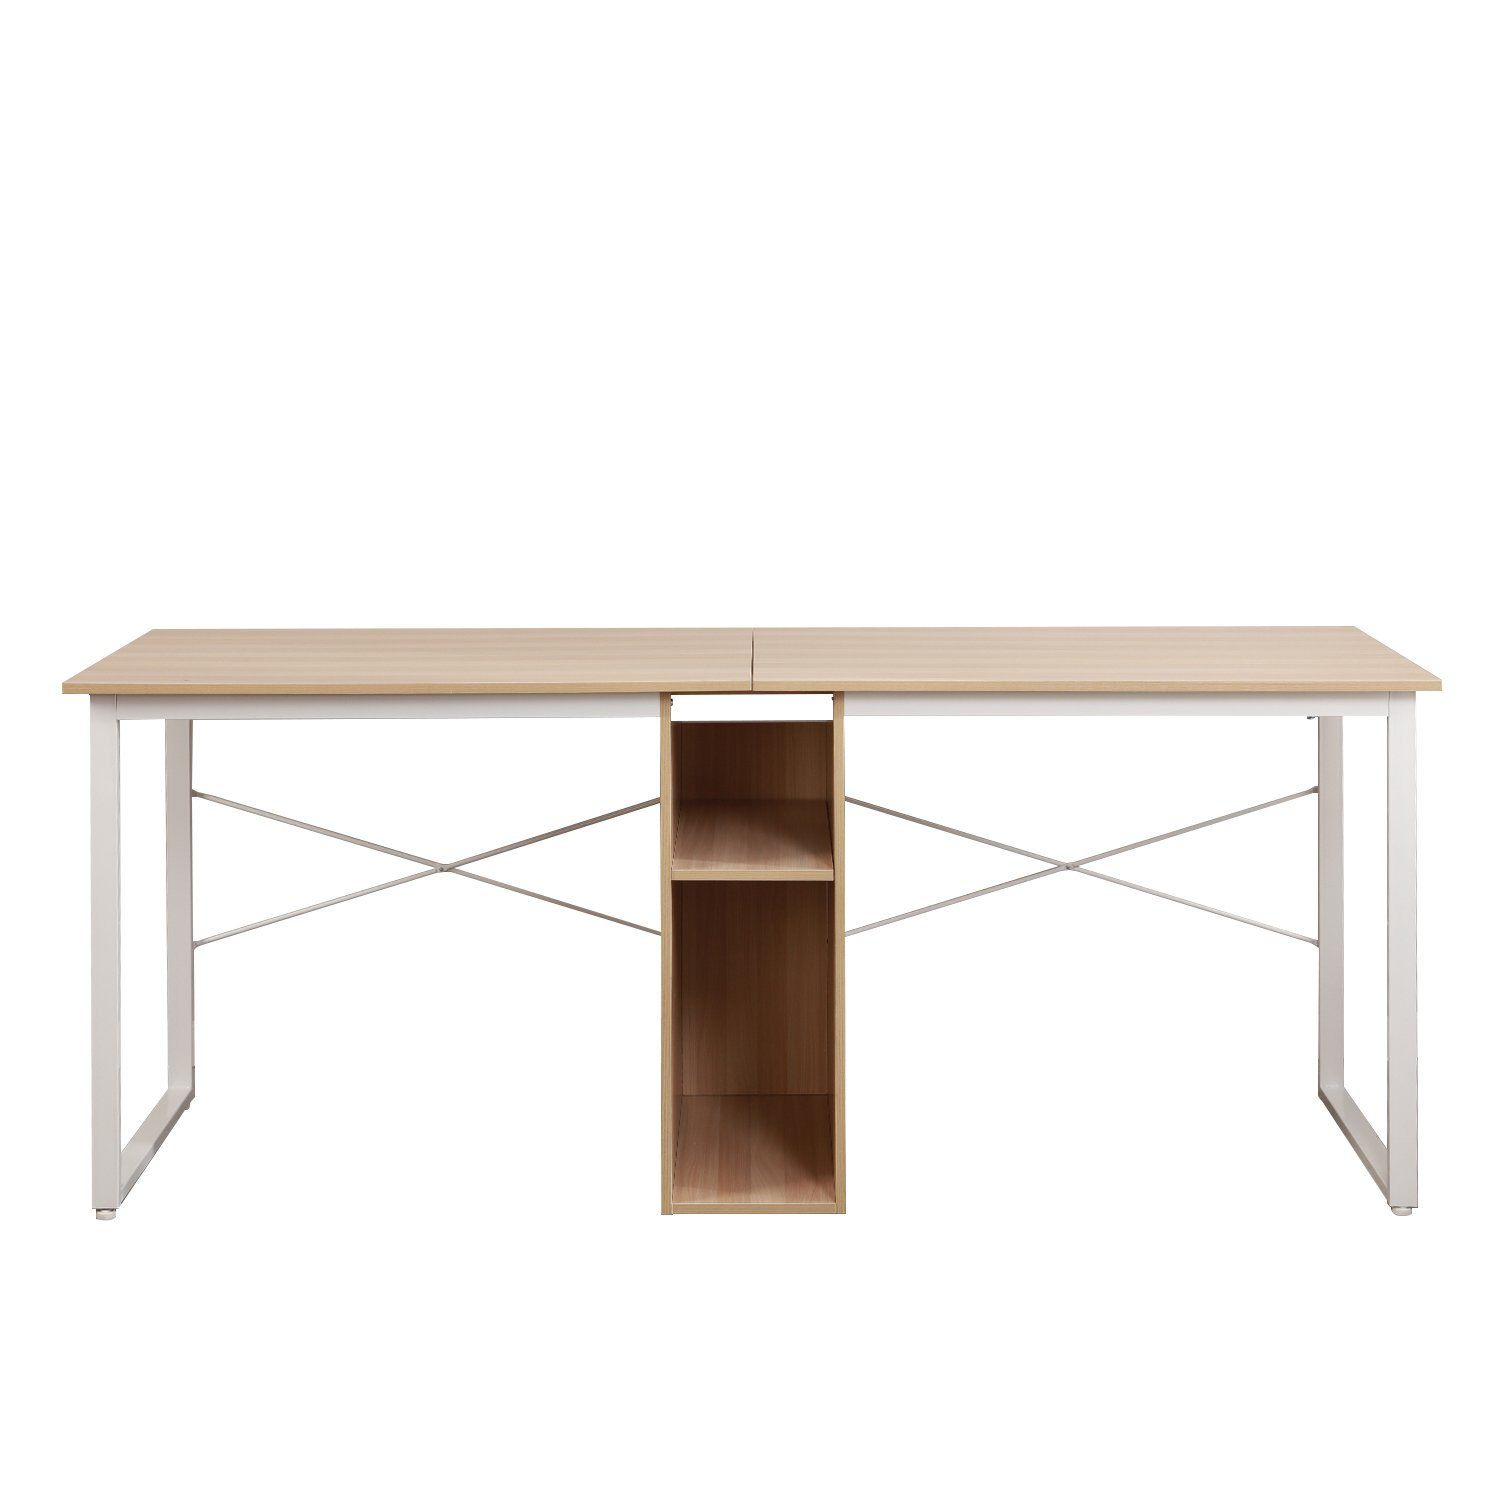 Soges 2-Person Home Office Desk,78 Large Double Workstation Desk Writing Desk with Storage White Oak HZ011-200-MO-CA